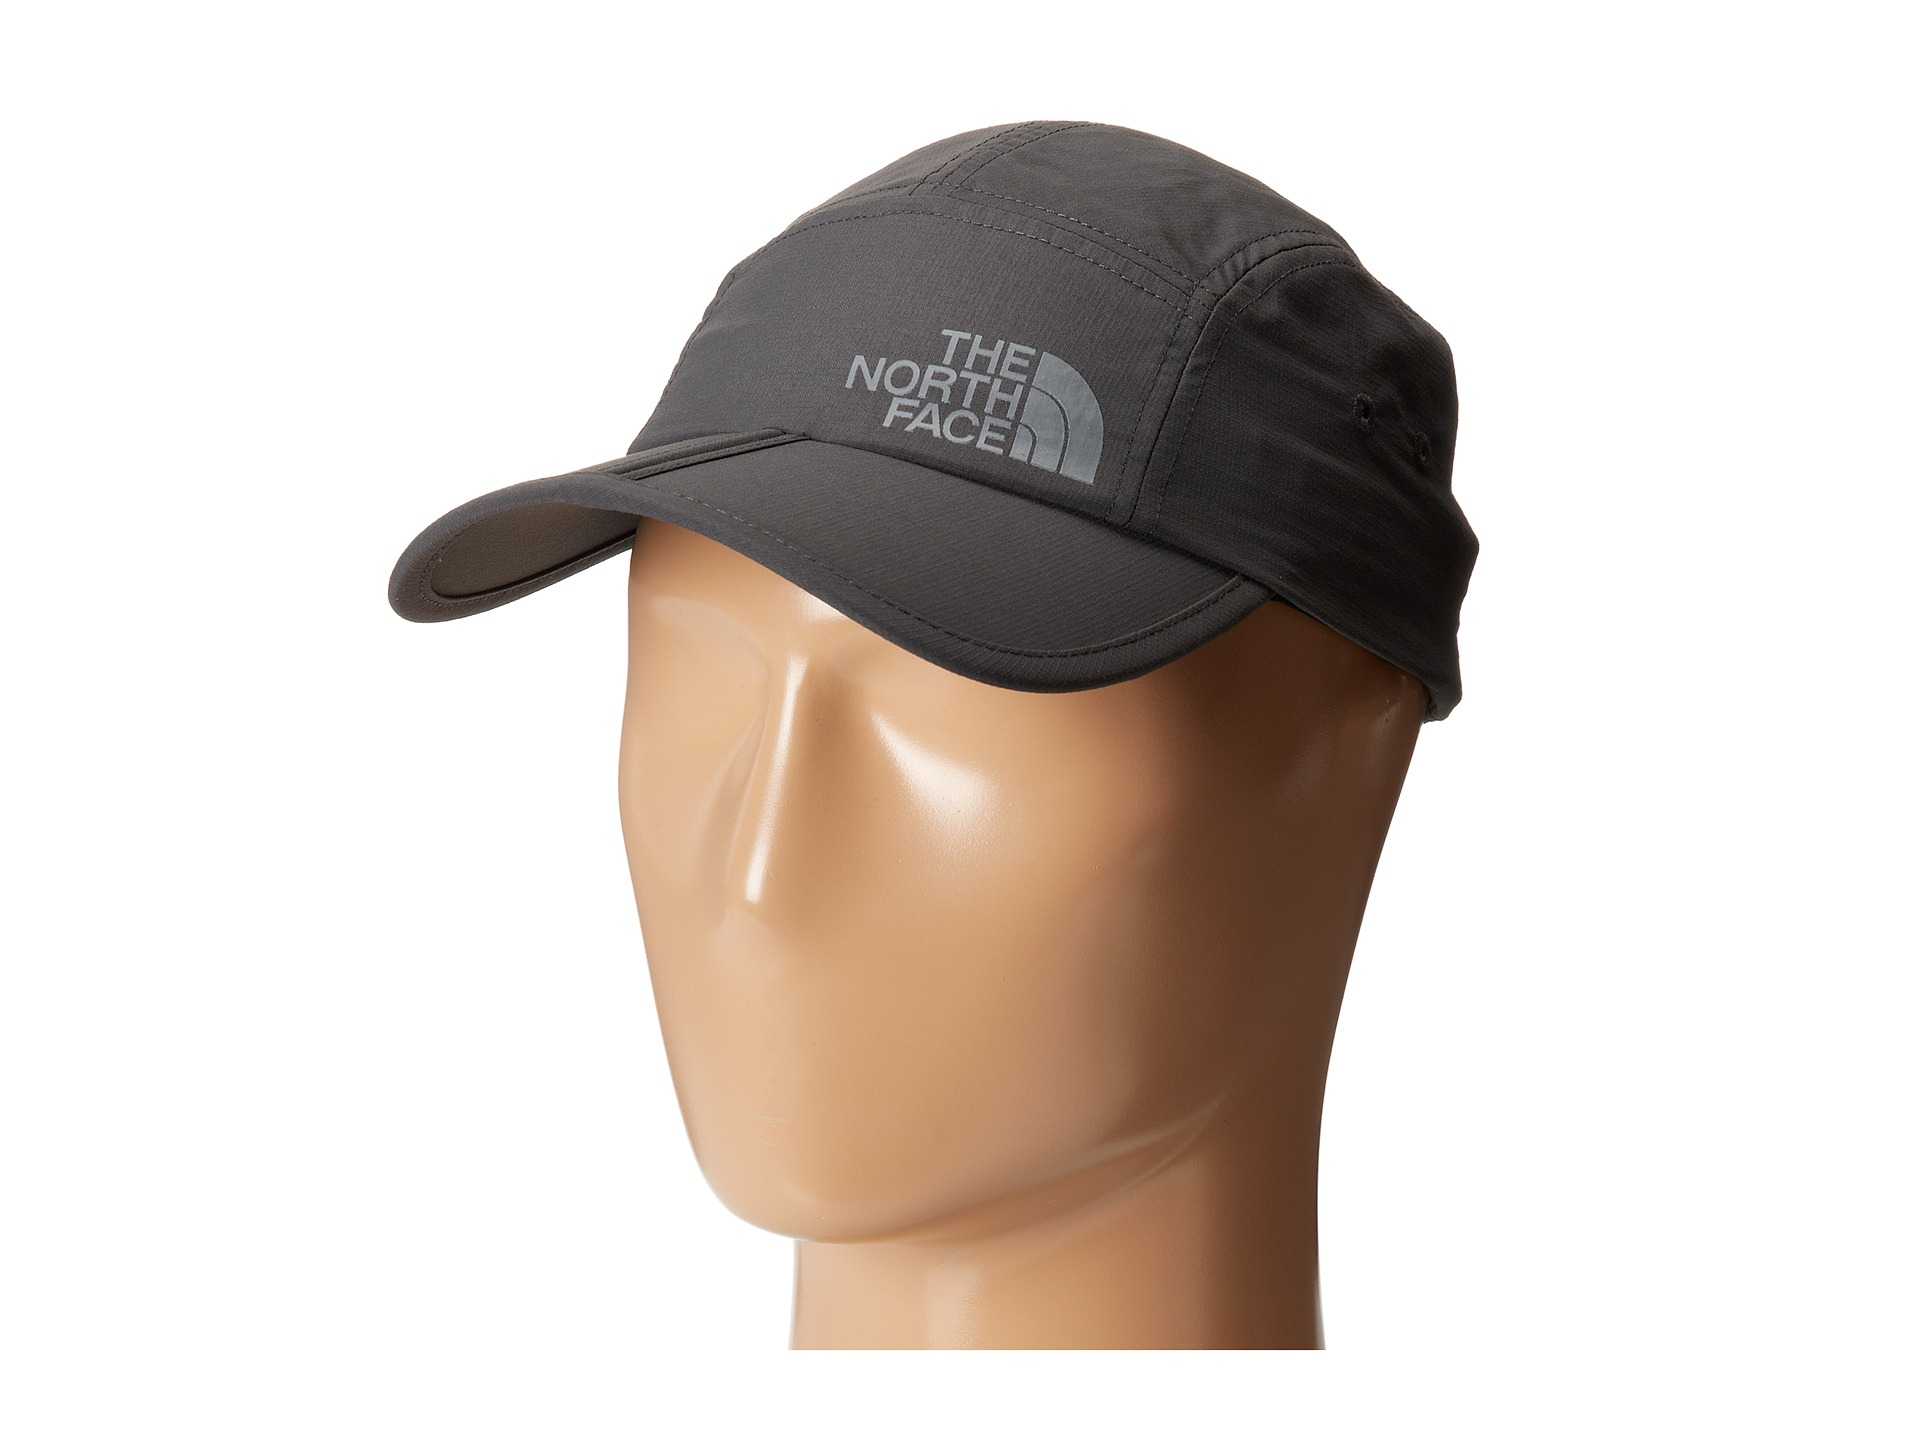 Lyst - The North Face Horizon Folding Bill Cap in Gray 05d43662ee05